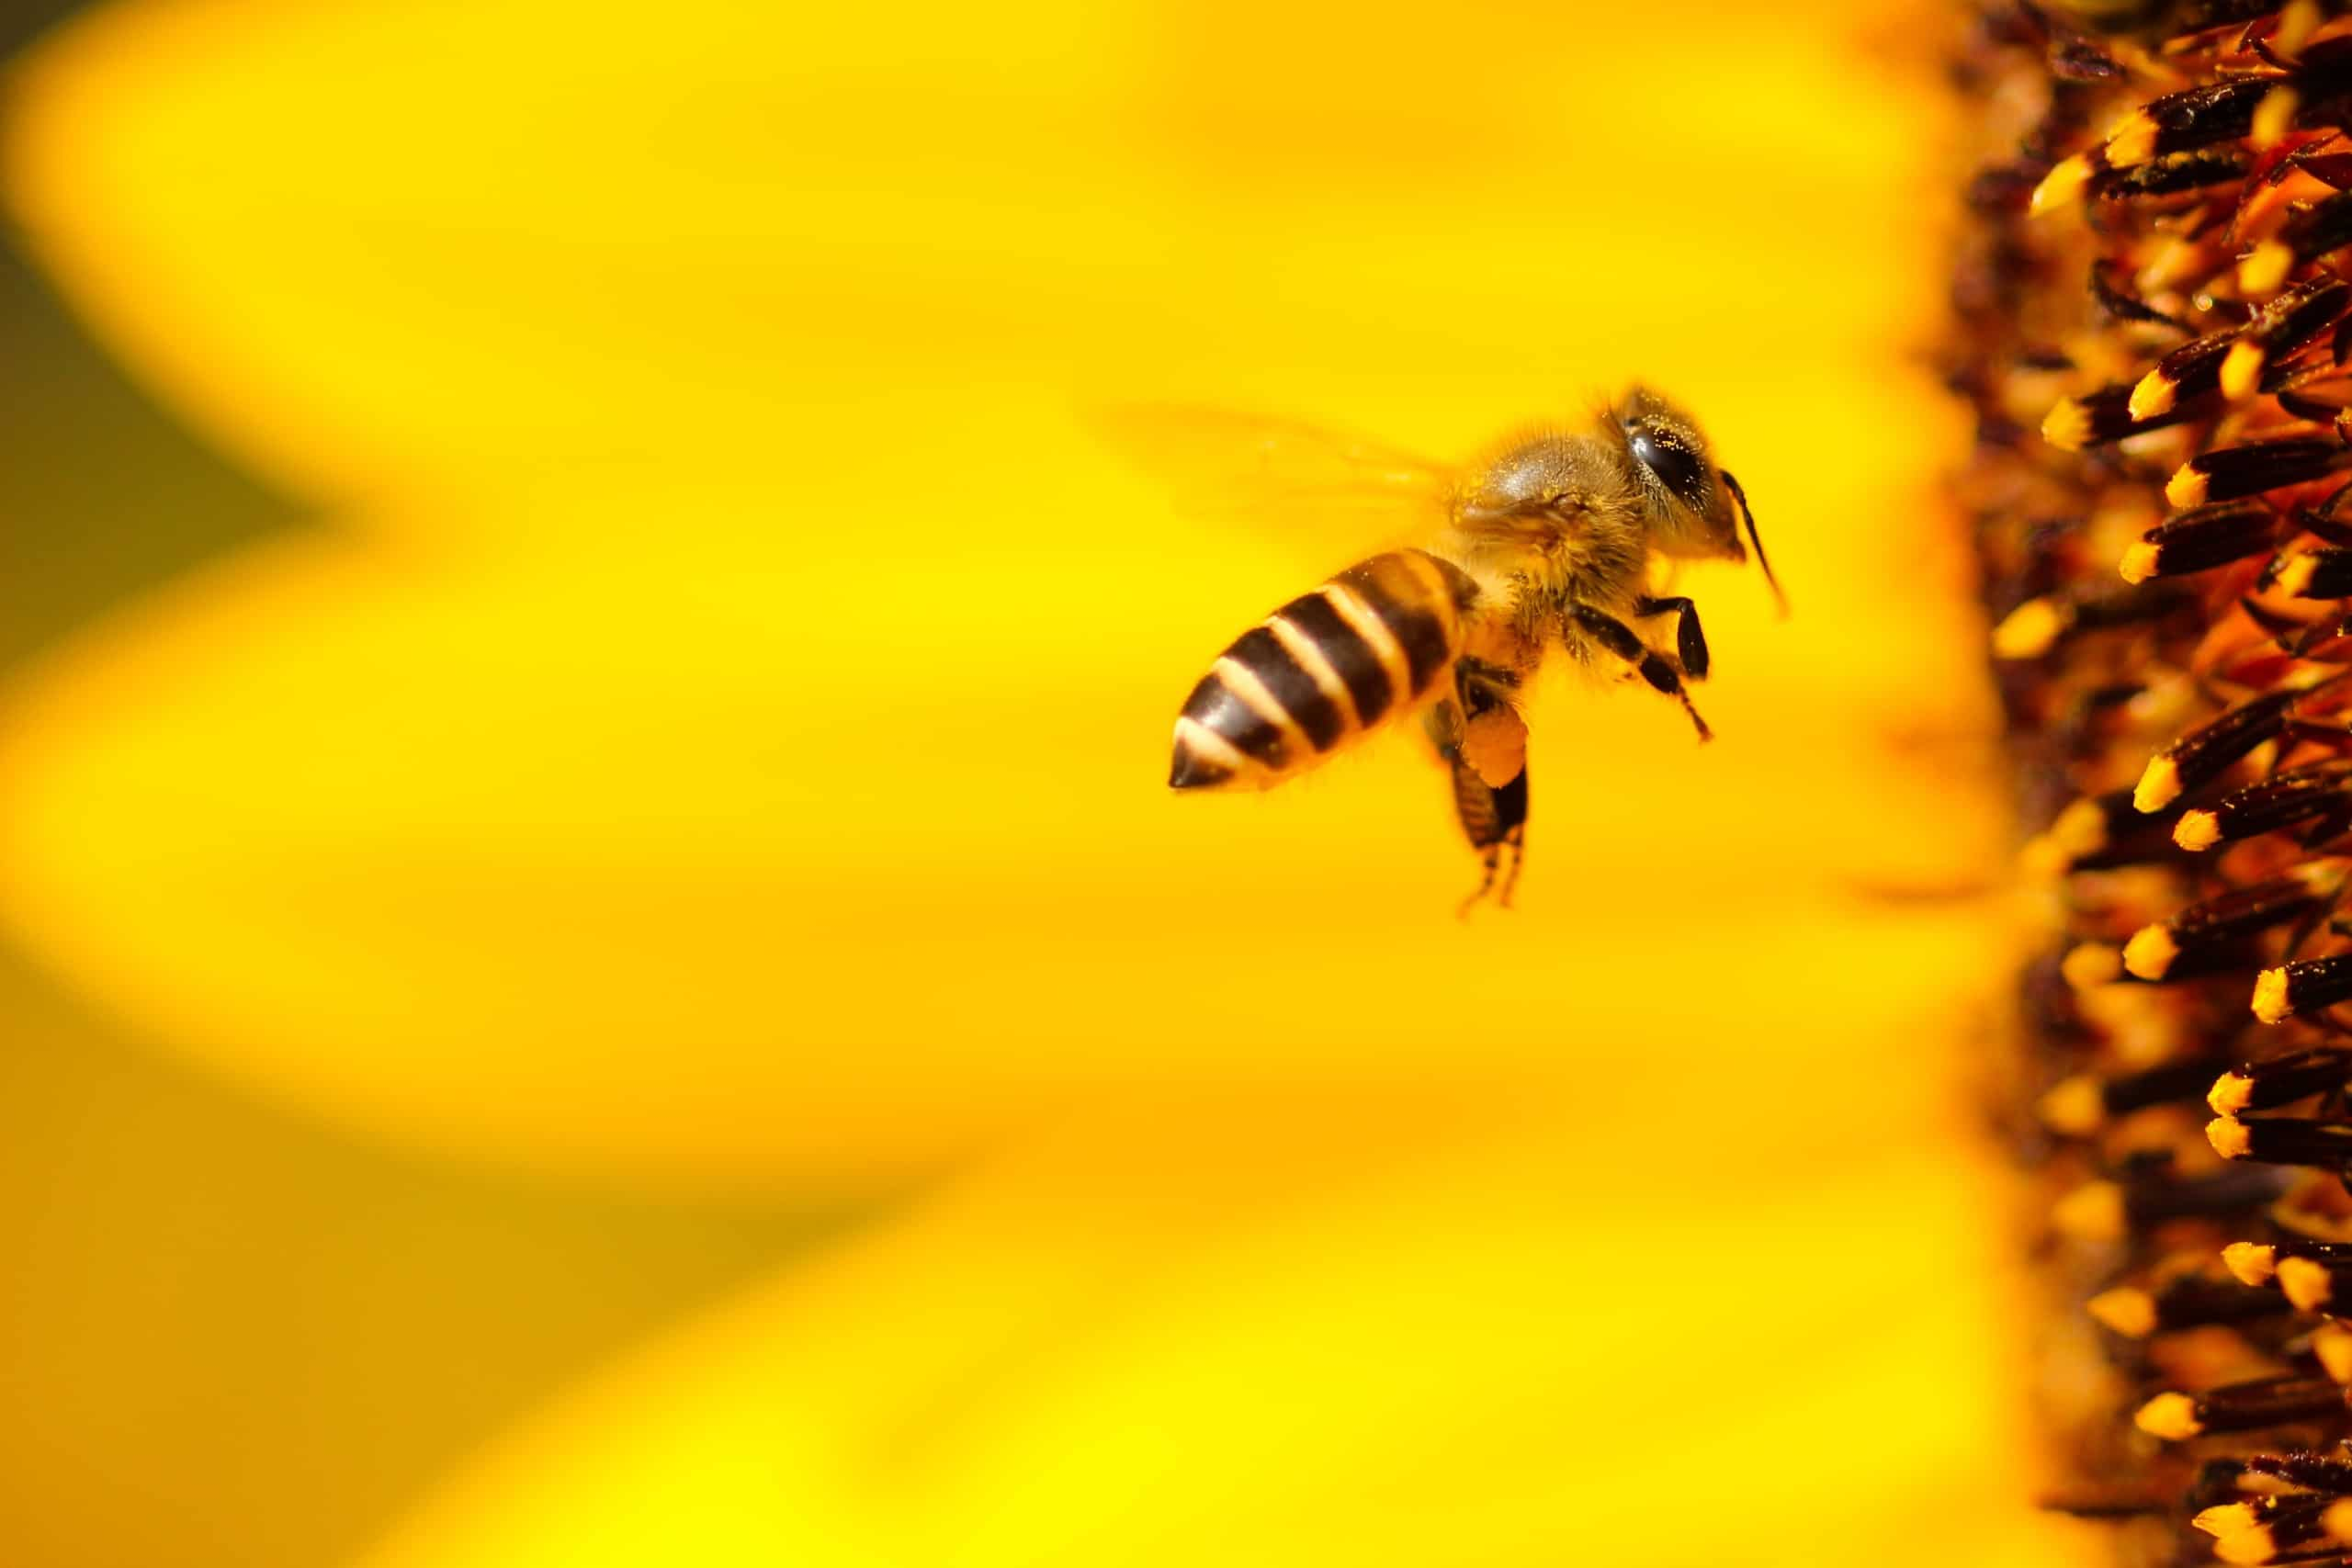 organic farming helps sustain bees and other beneficial insects